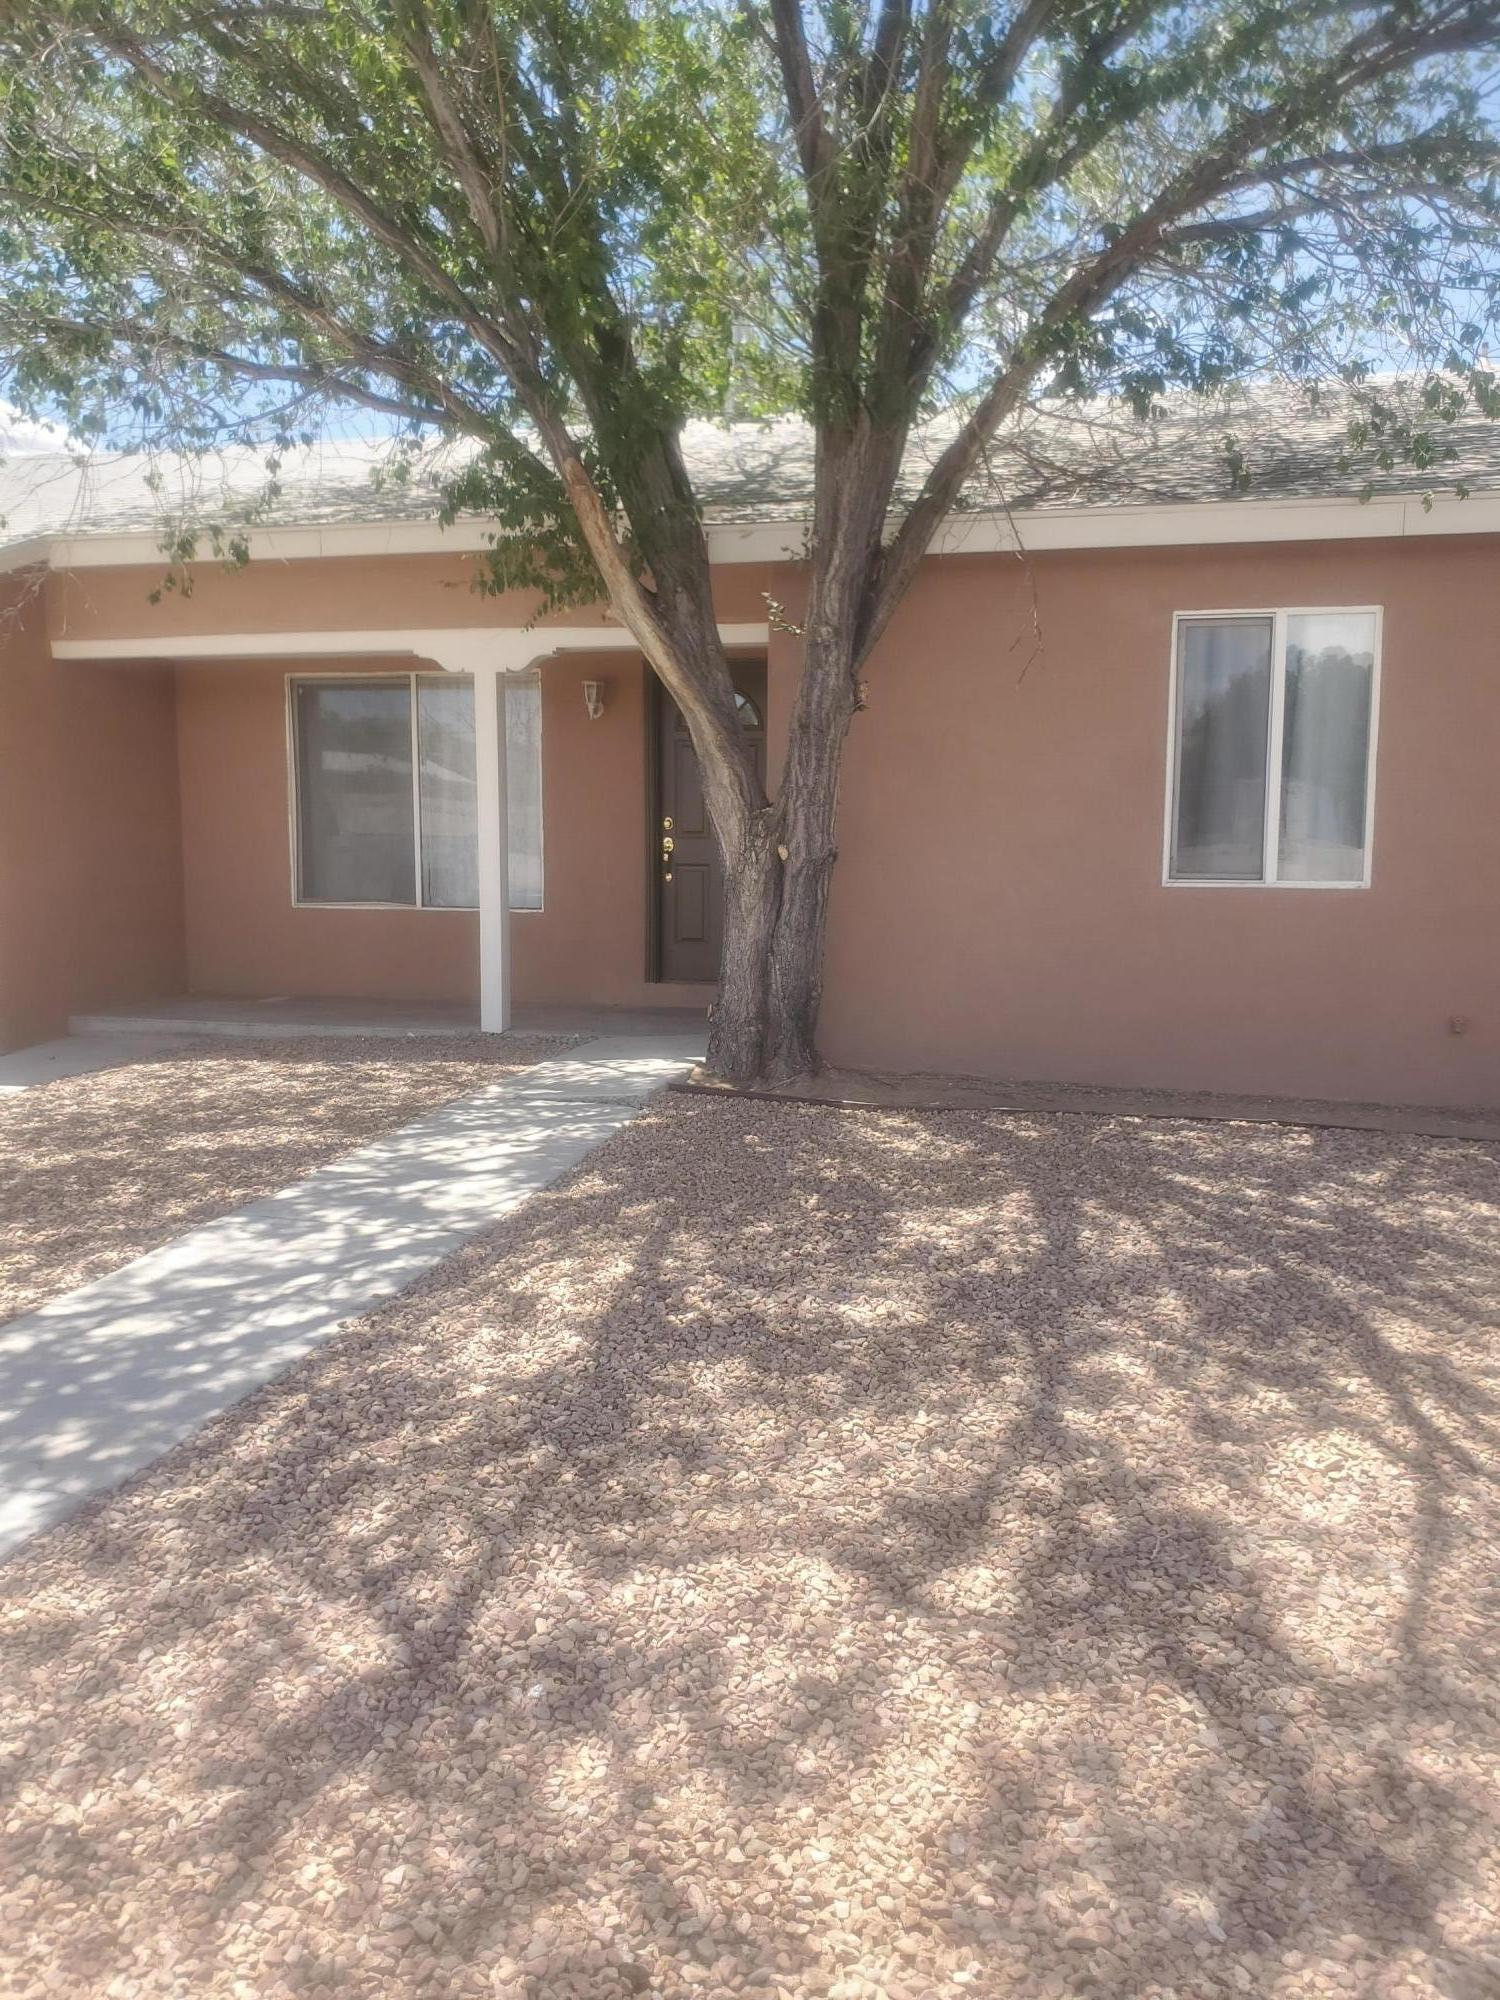 Come see this charming 2 bedroom 1 bath house located conveniently.LOTS OF UPDATED THROUGHOUT THE HOME!!!. .This adorable house is ready for you to call it home!!!